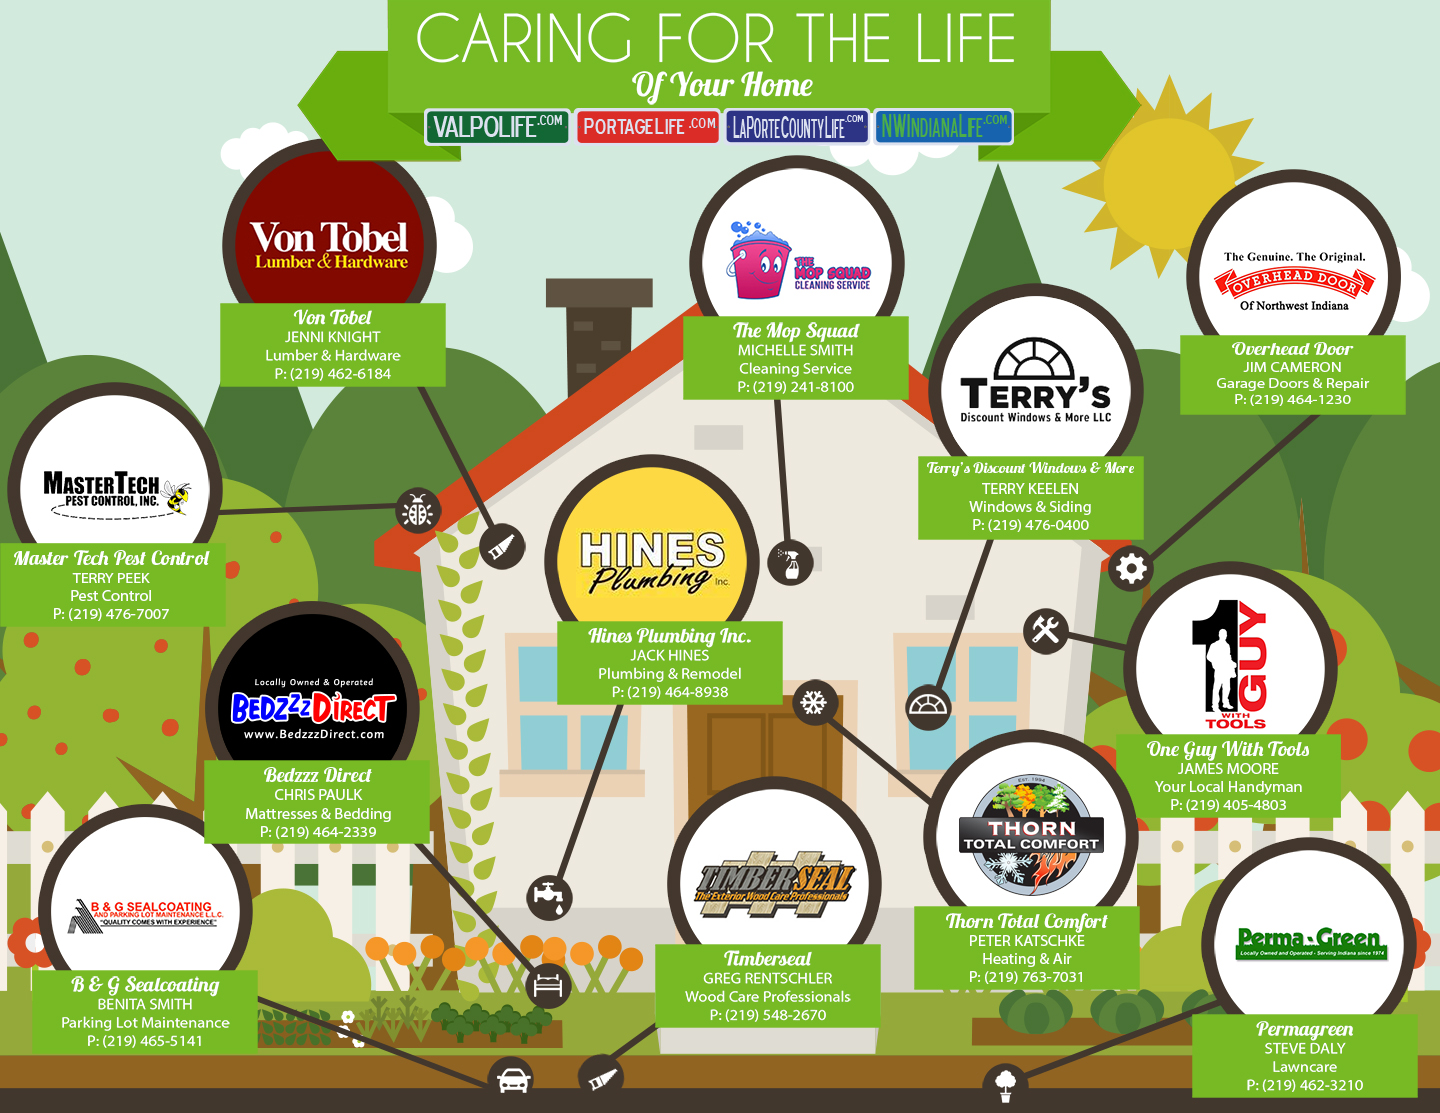 Caring for the Life of Your Home: Winterizing